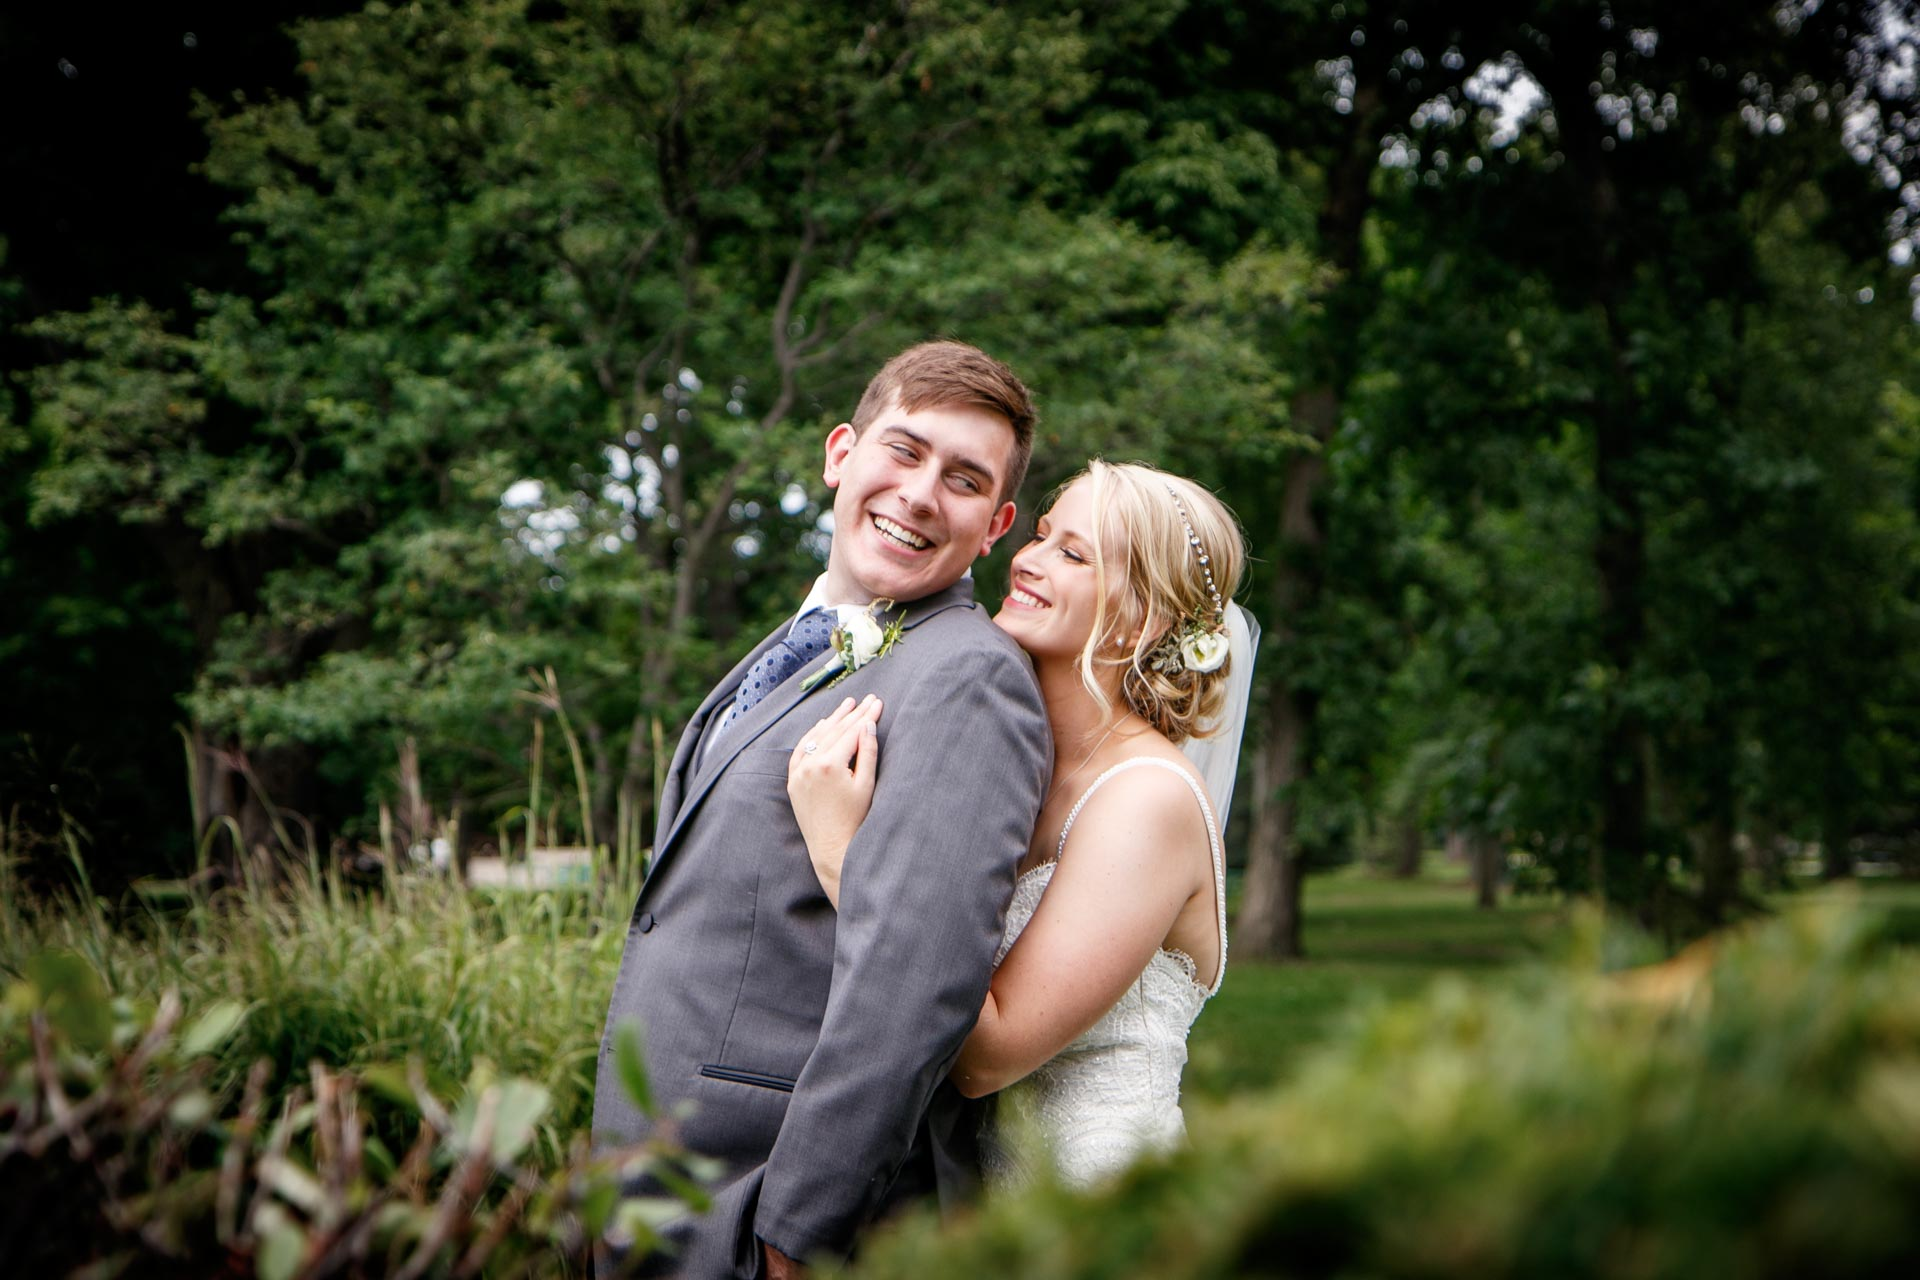 neenah-riverside-park-bride-groom-adam-shea-photography-green-bay-appleton-neenah-photographer-14.jpg